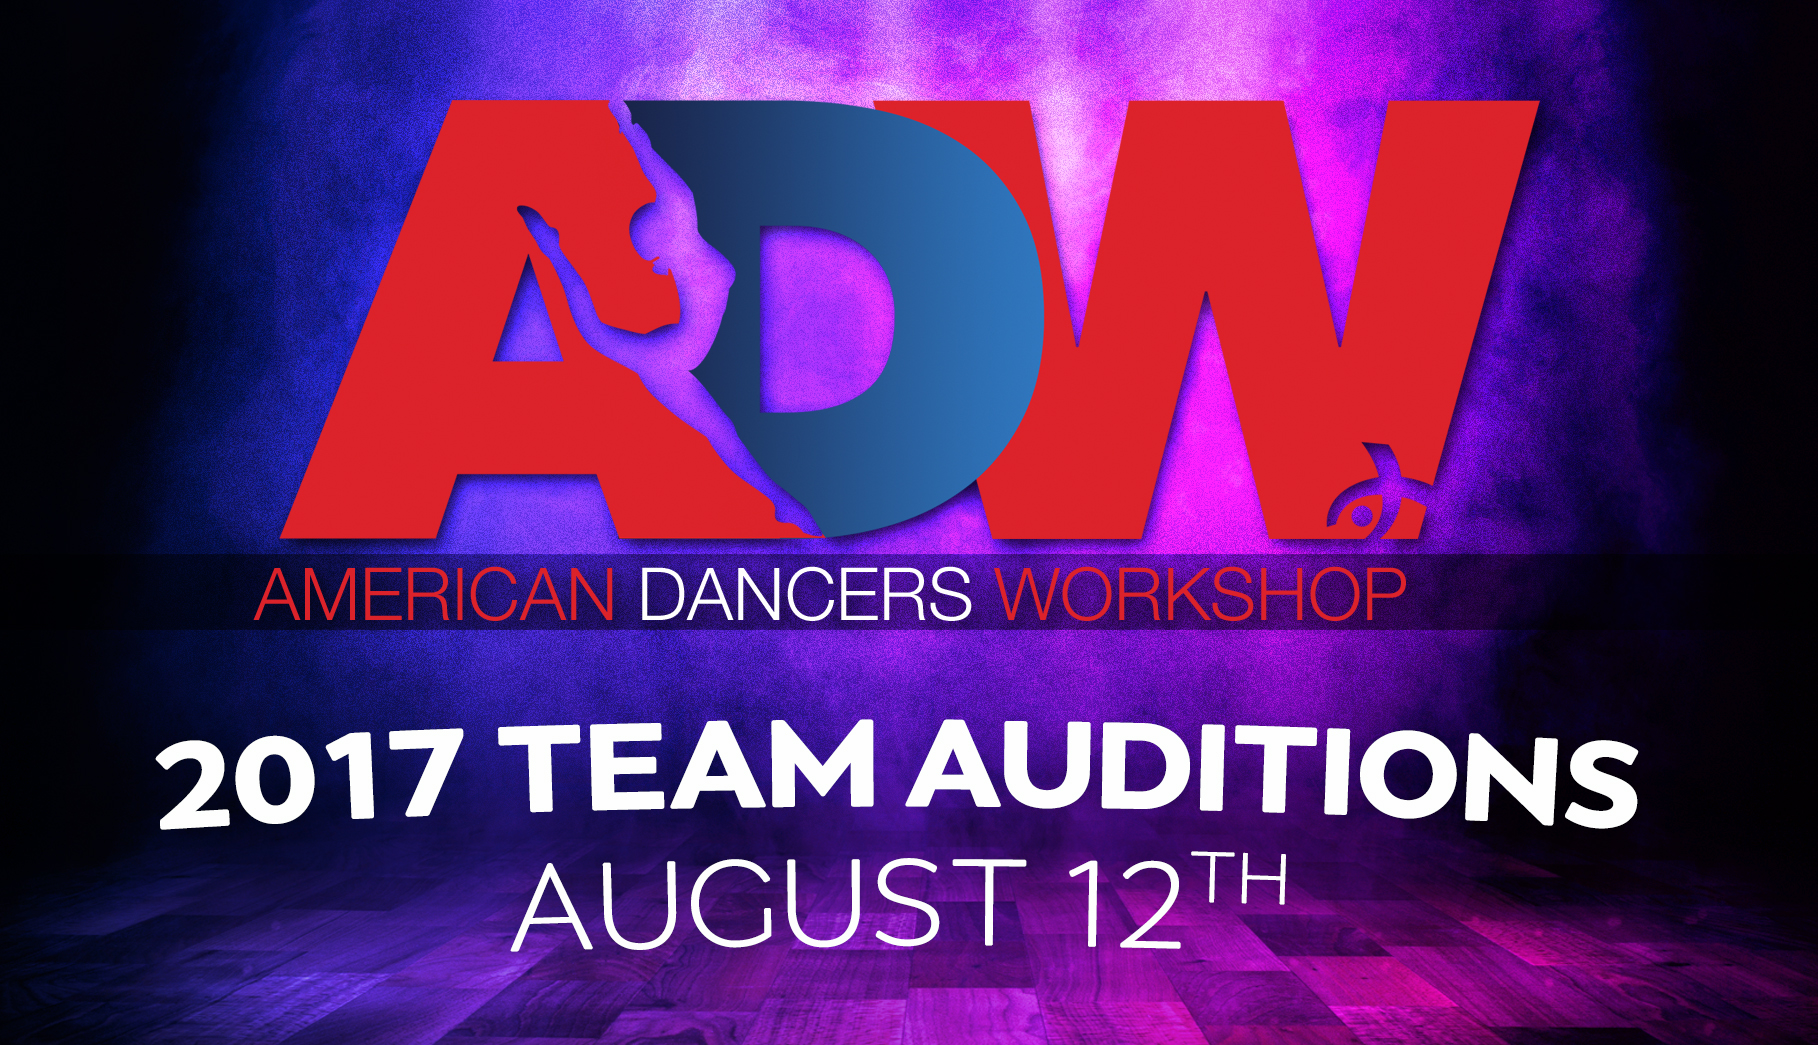 Team Auditions